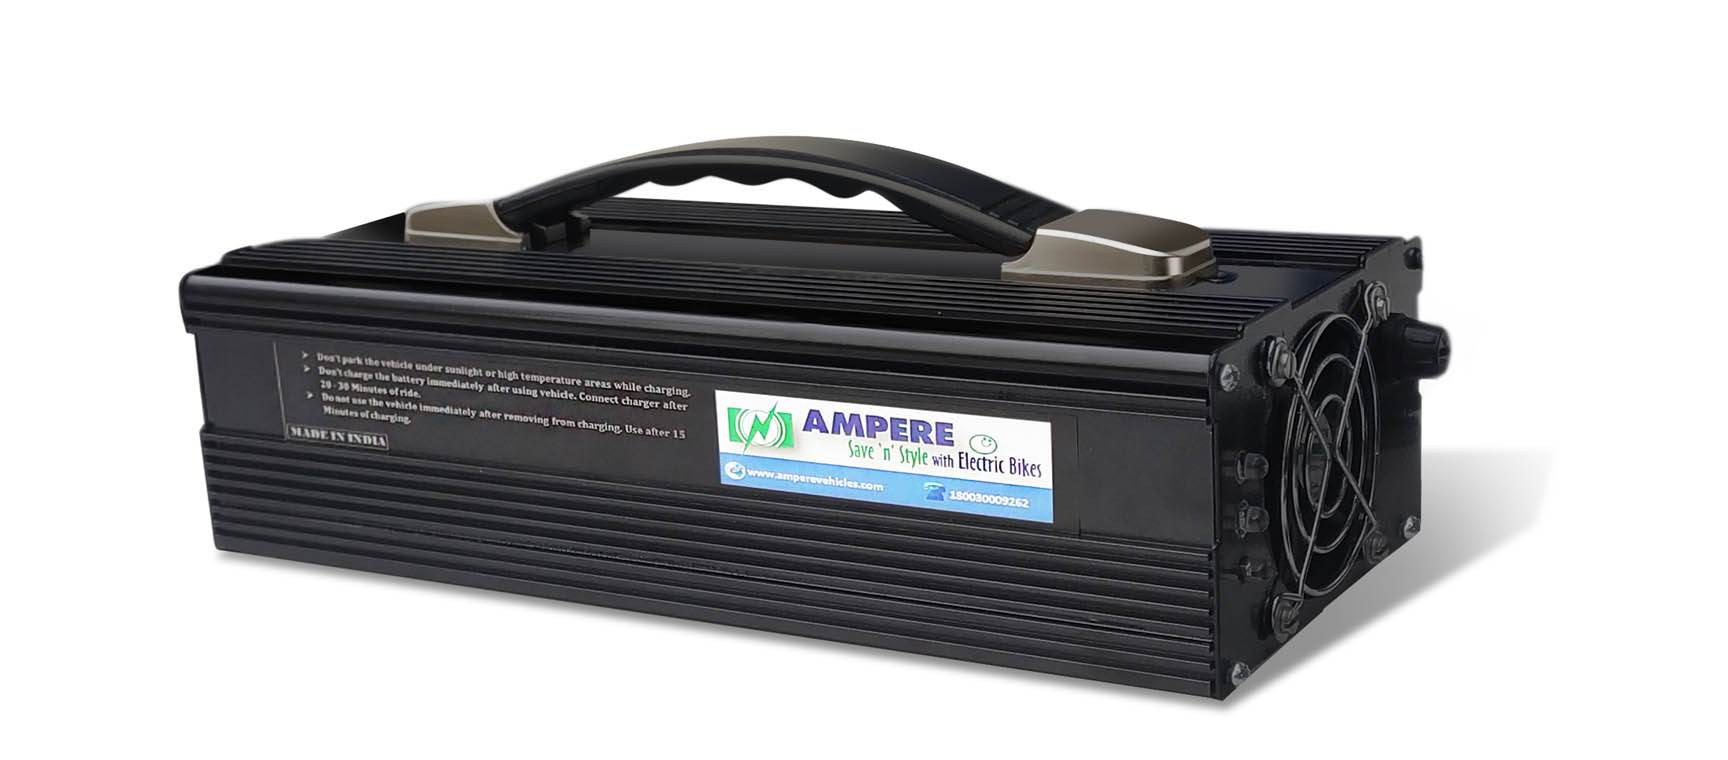 web-the-48v-20ah-li-ion-charger-offers-high-temperture-protection-as-well-as-overcharge-protection-with-auto-cut-off